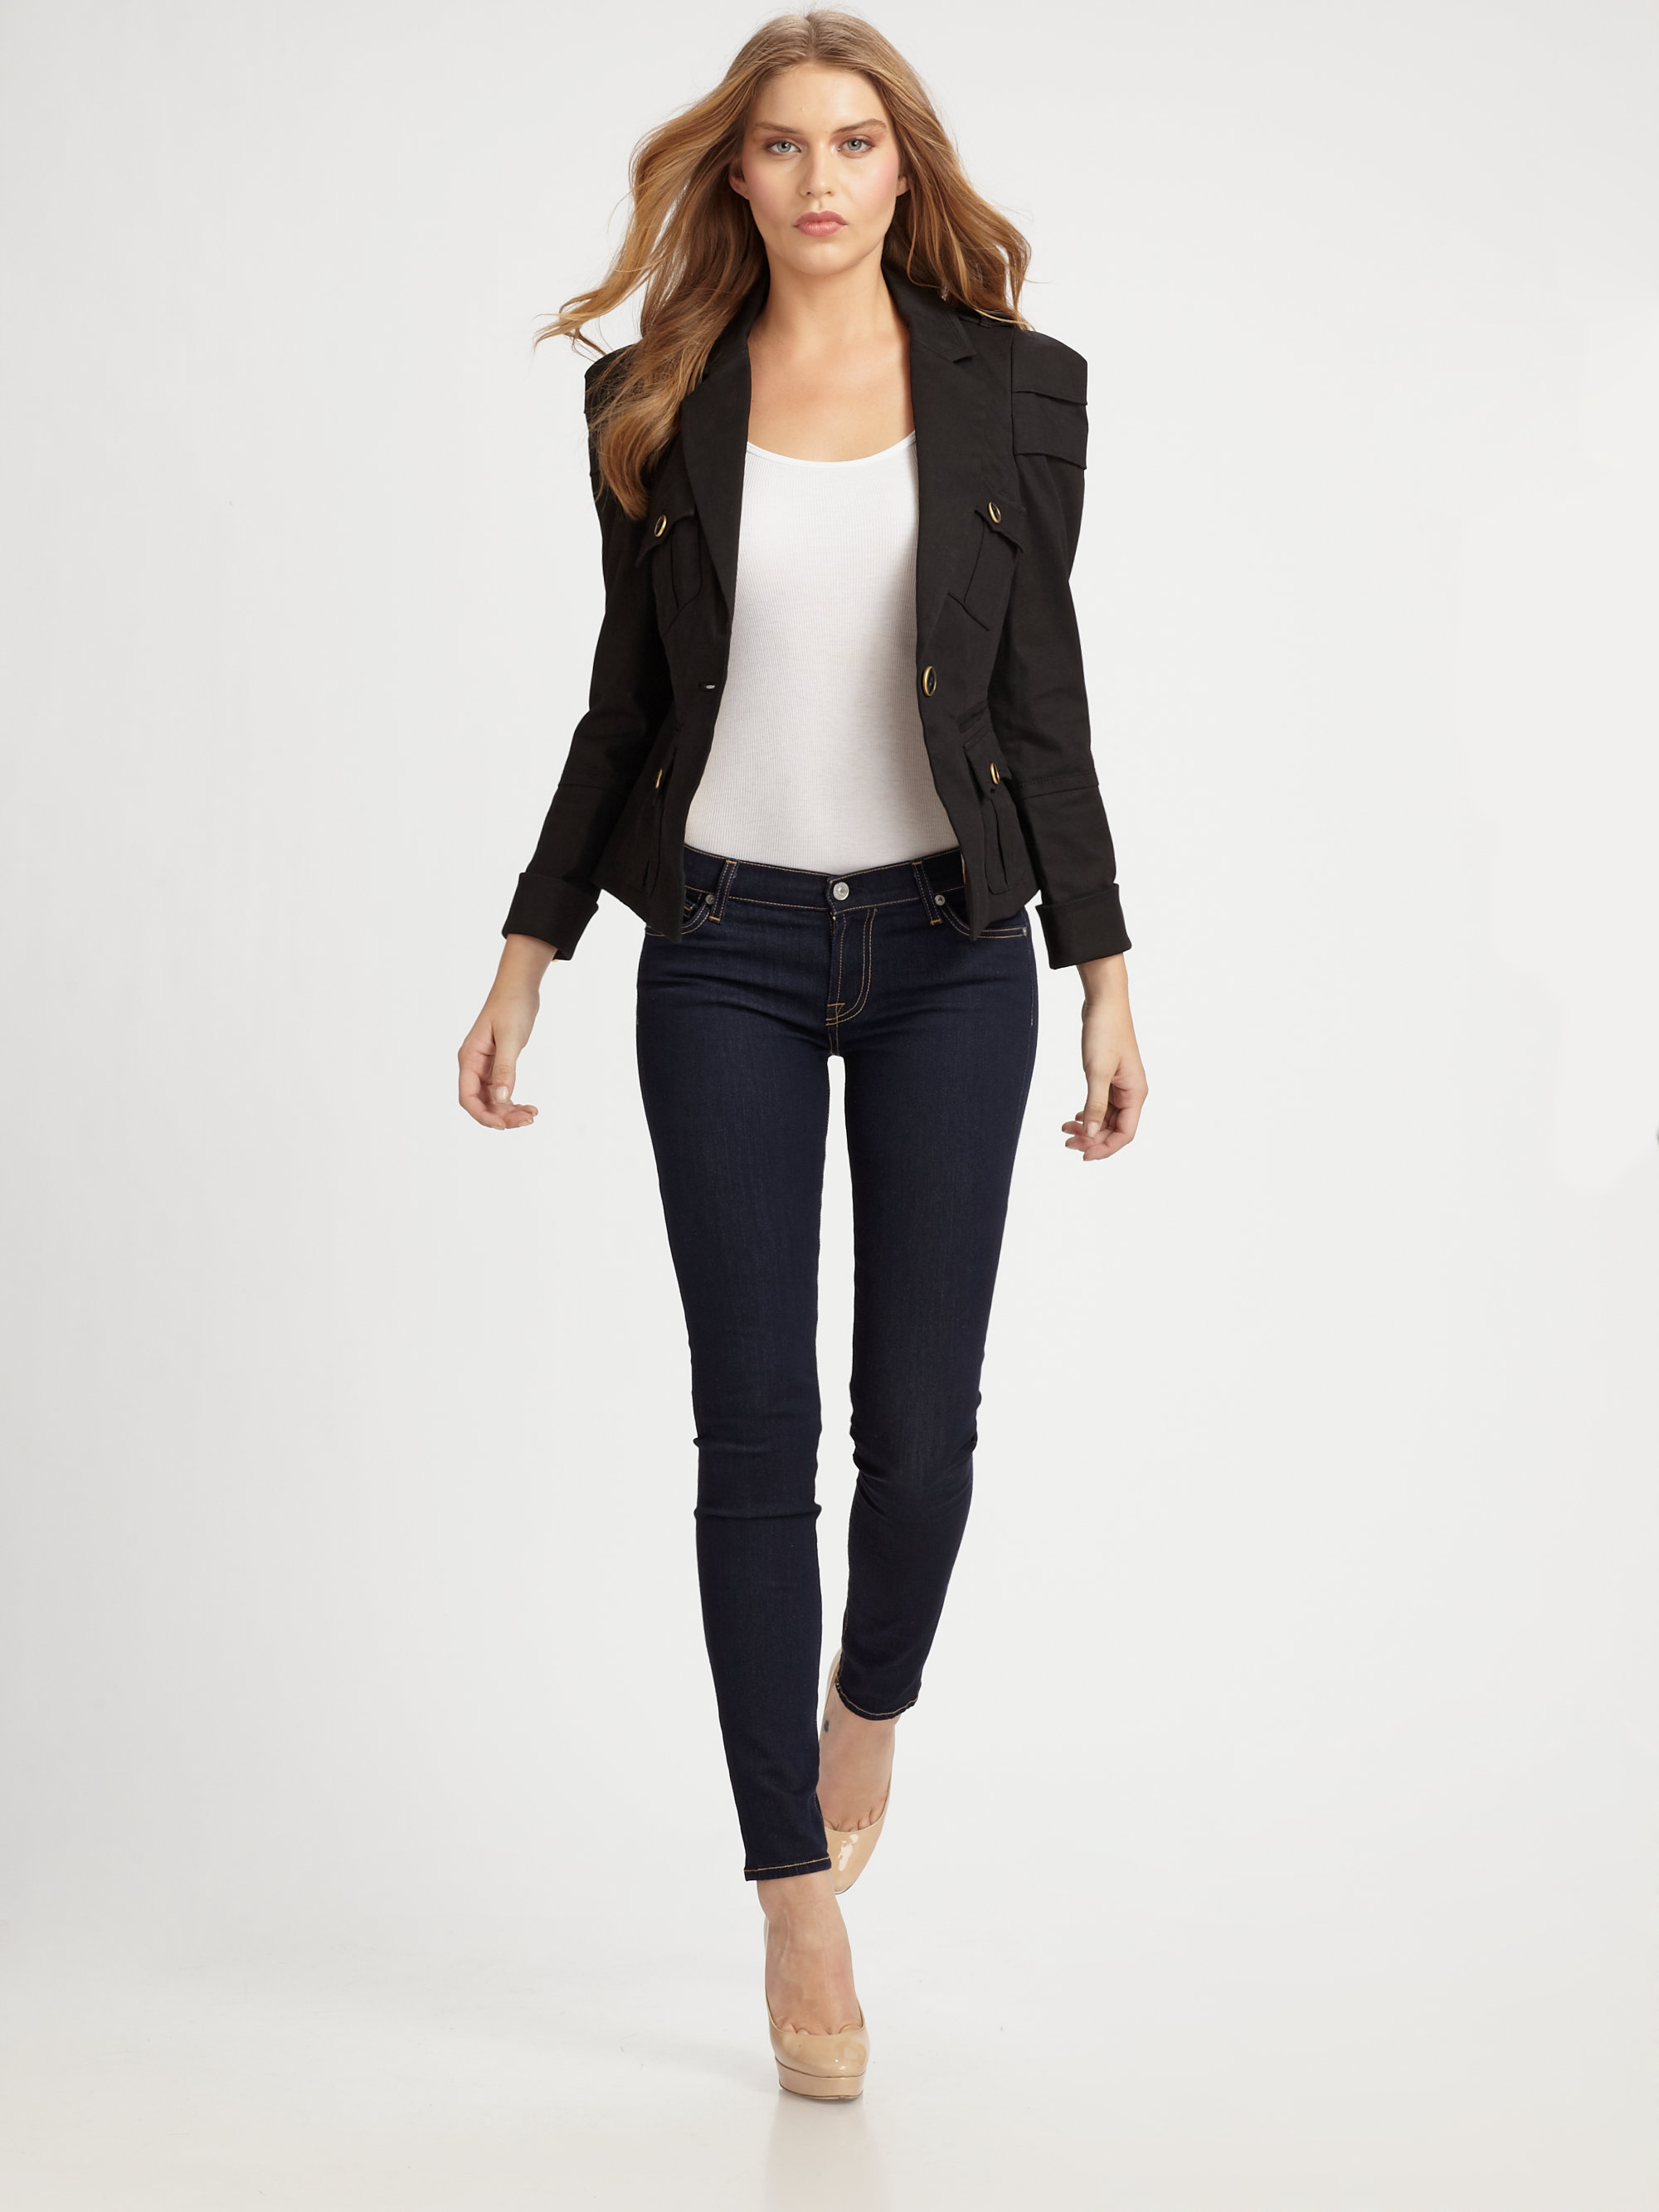 Find great deals on eBay for Womens Blazer Jackets Casual in Coats and Jackets for the Modern Lady. Shop with confidence.